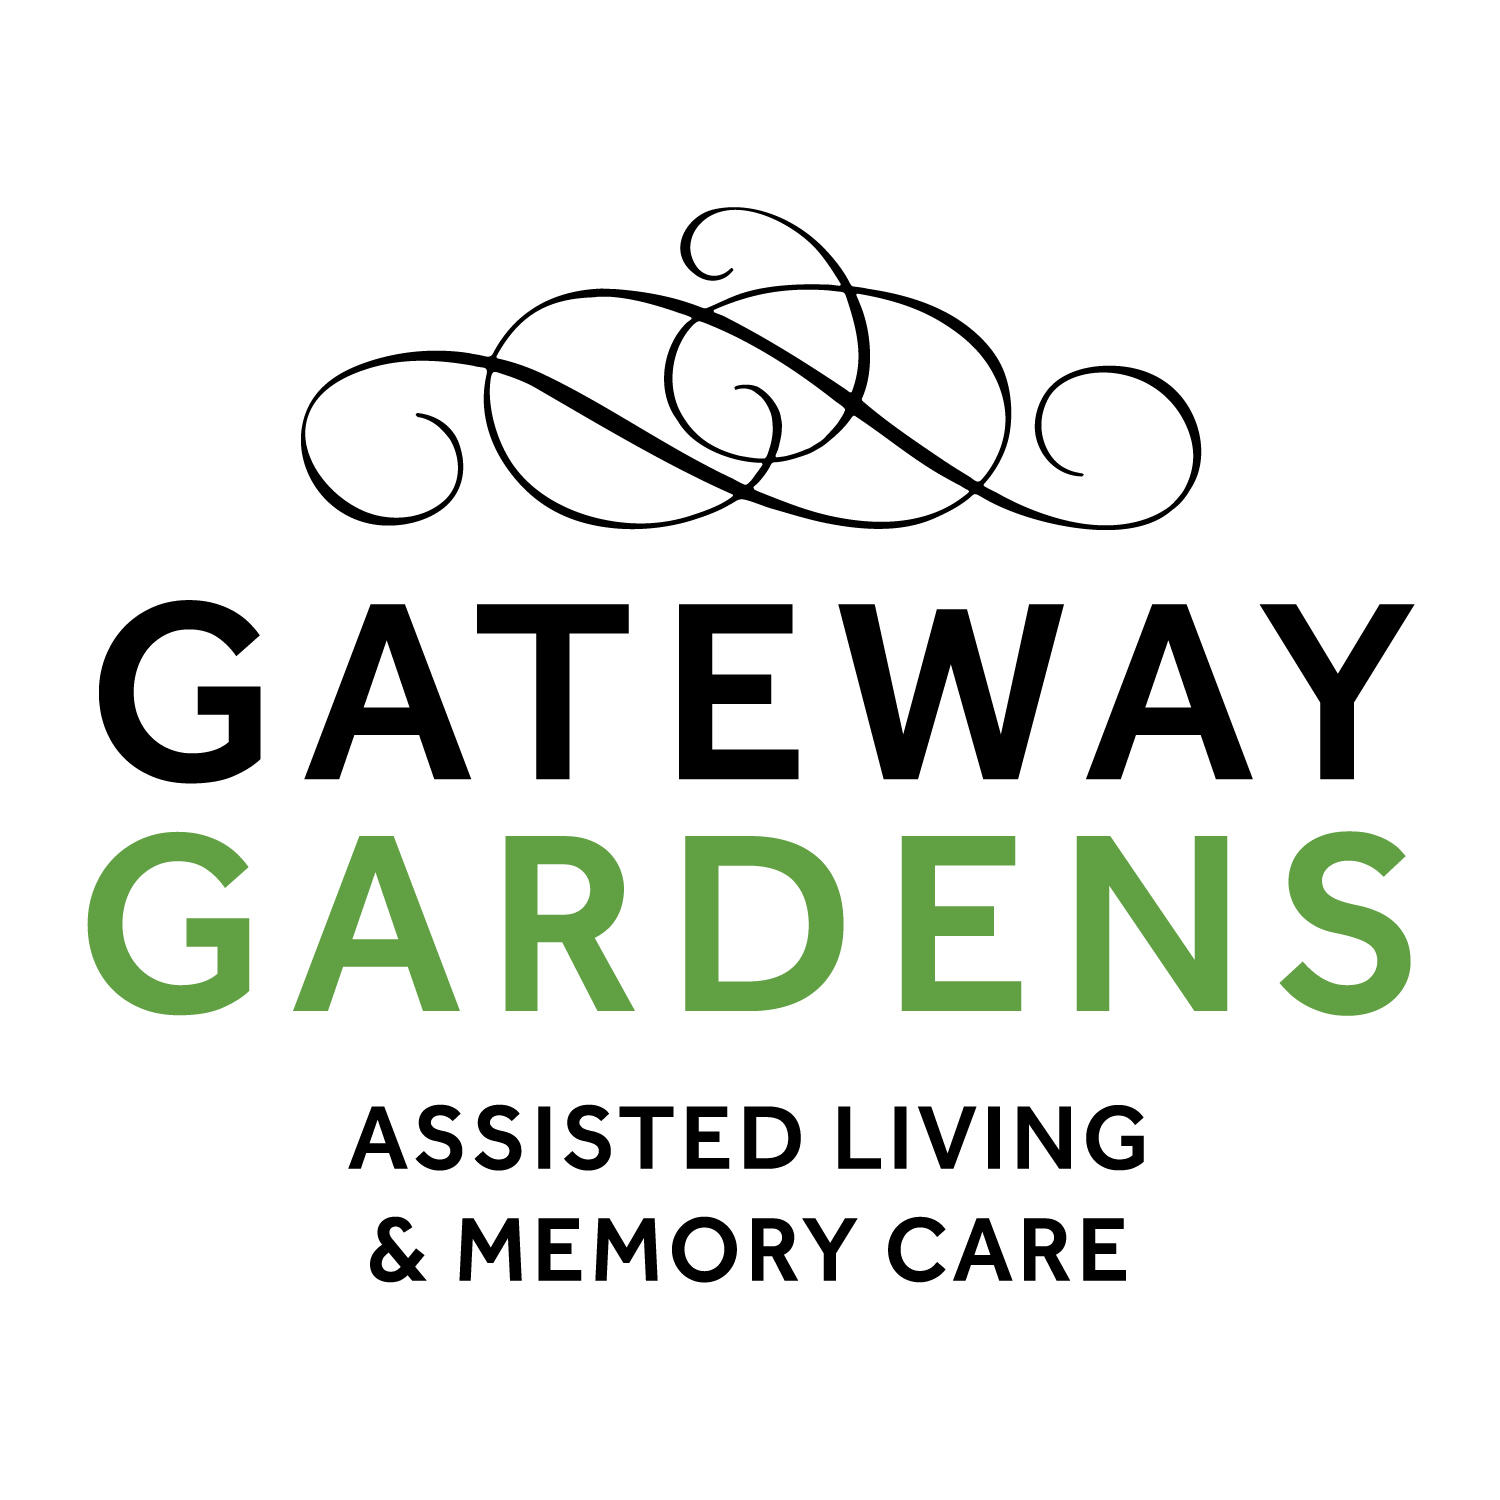 Gateway Gardens Assisted Living & Memory Care